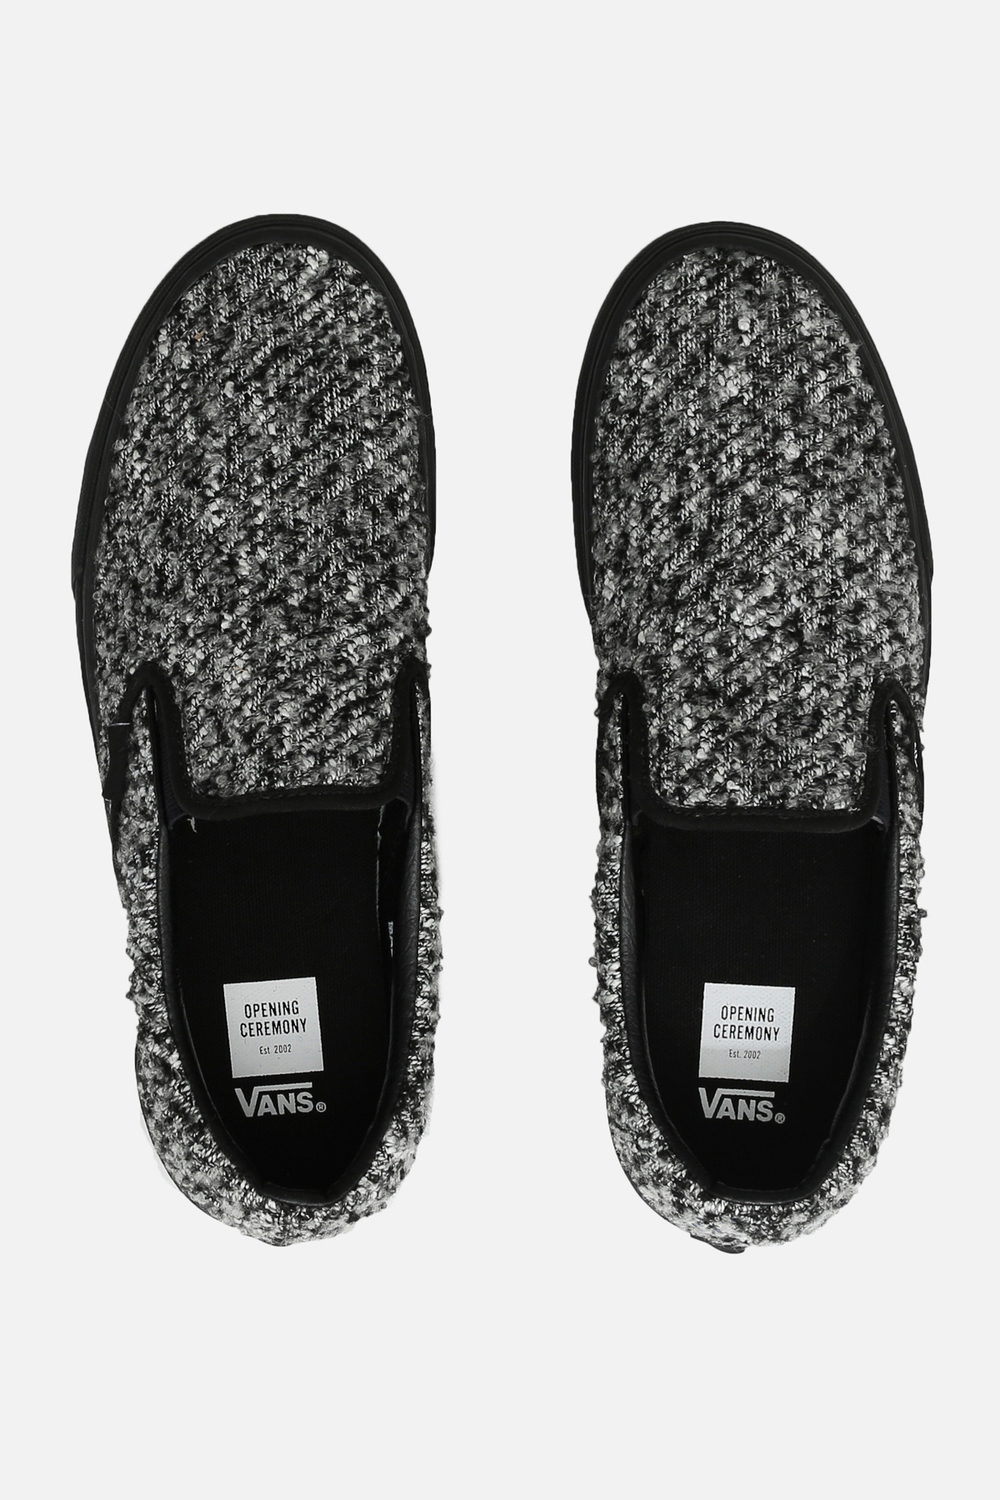 "Opening Ceremony x Vans Slip On ""Wool"" Pack"